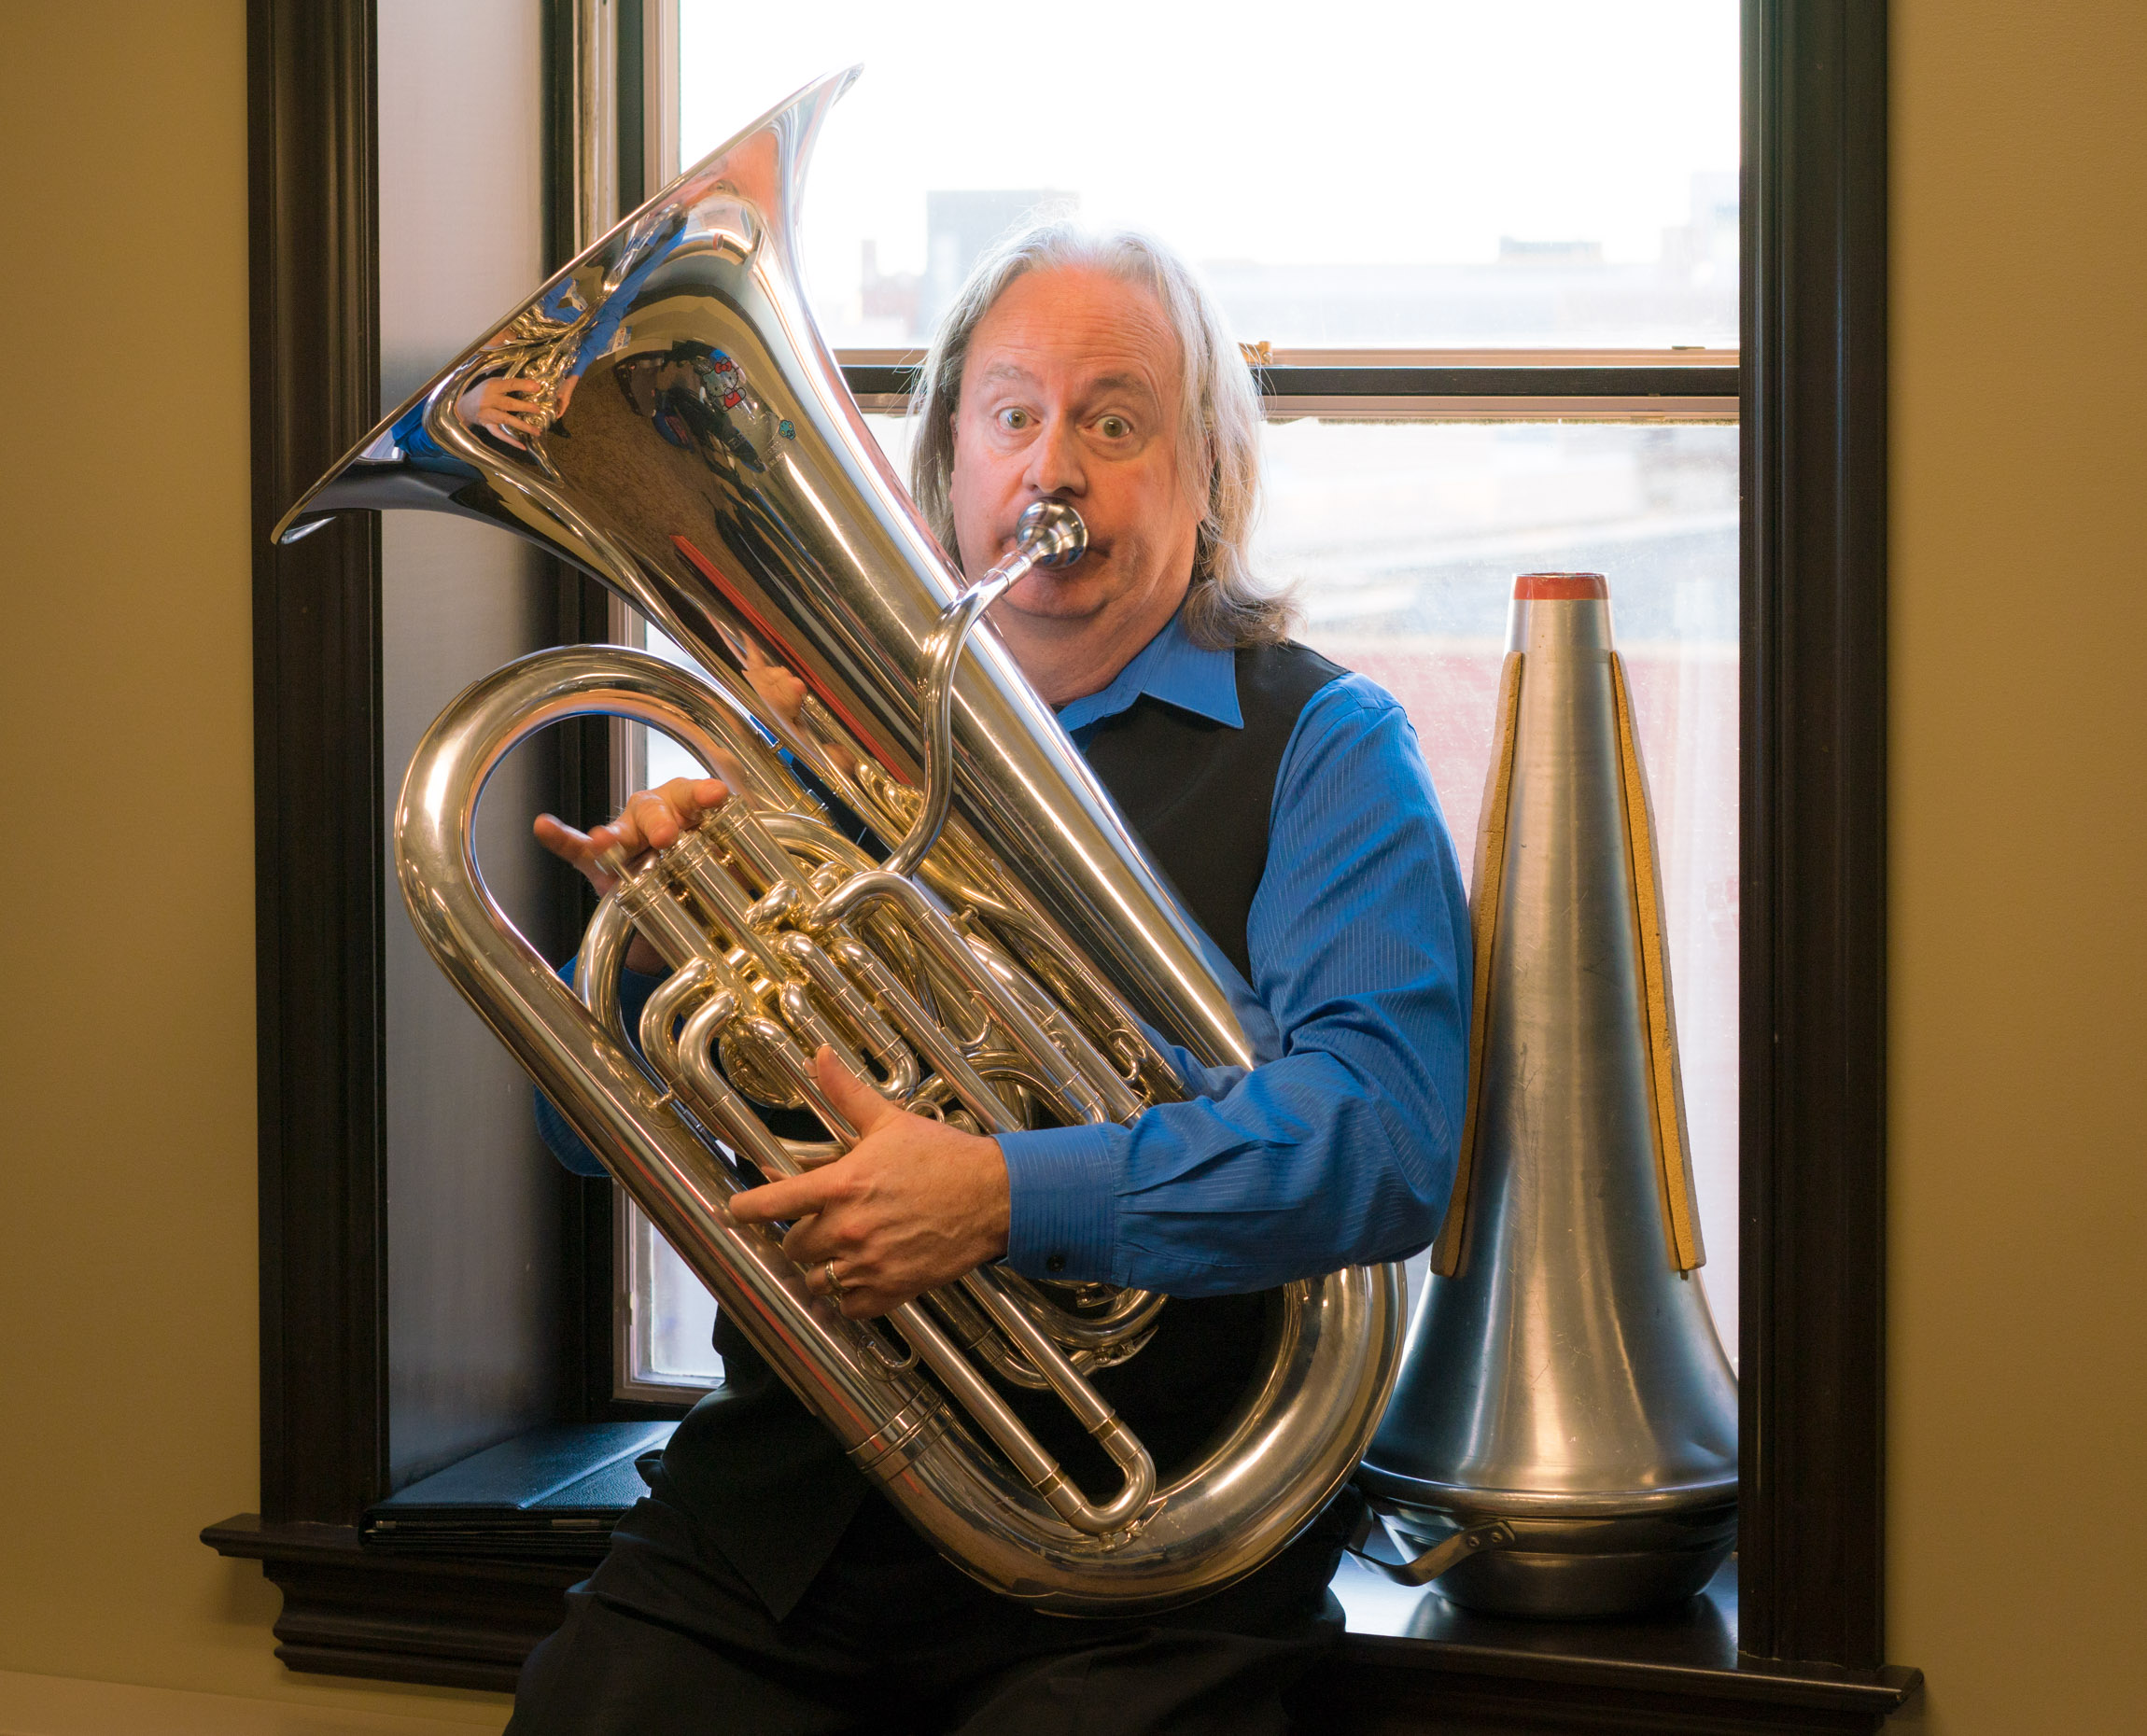 The Performers – Fountain City Brass Band